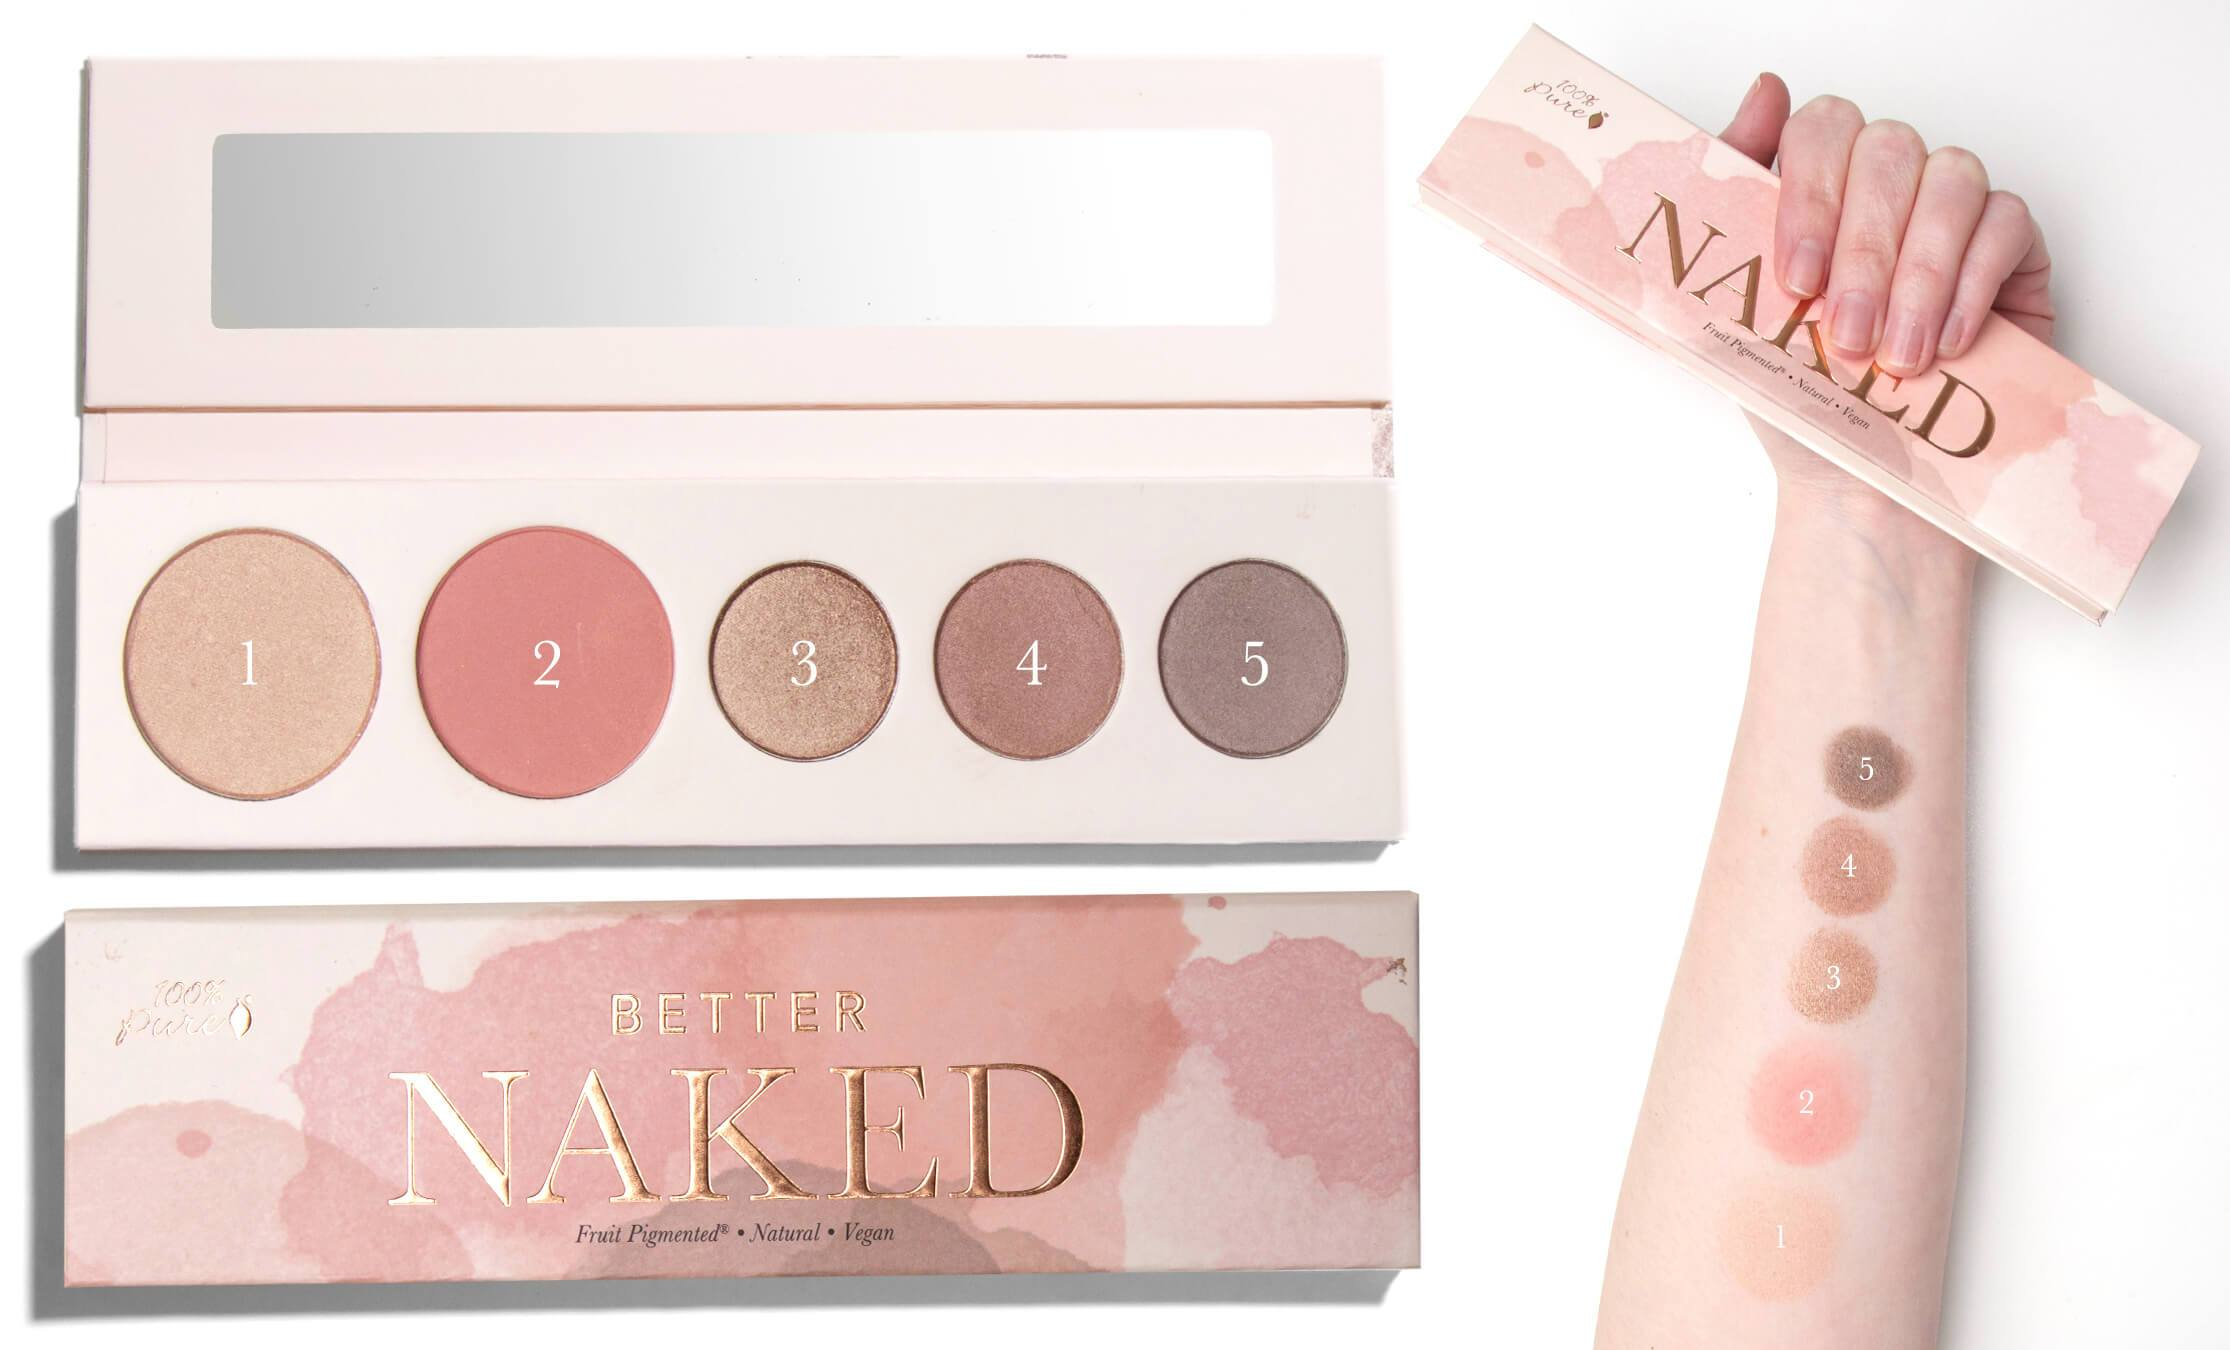 100 Percent Pure Naturkosmetik Palette Better Naked